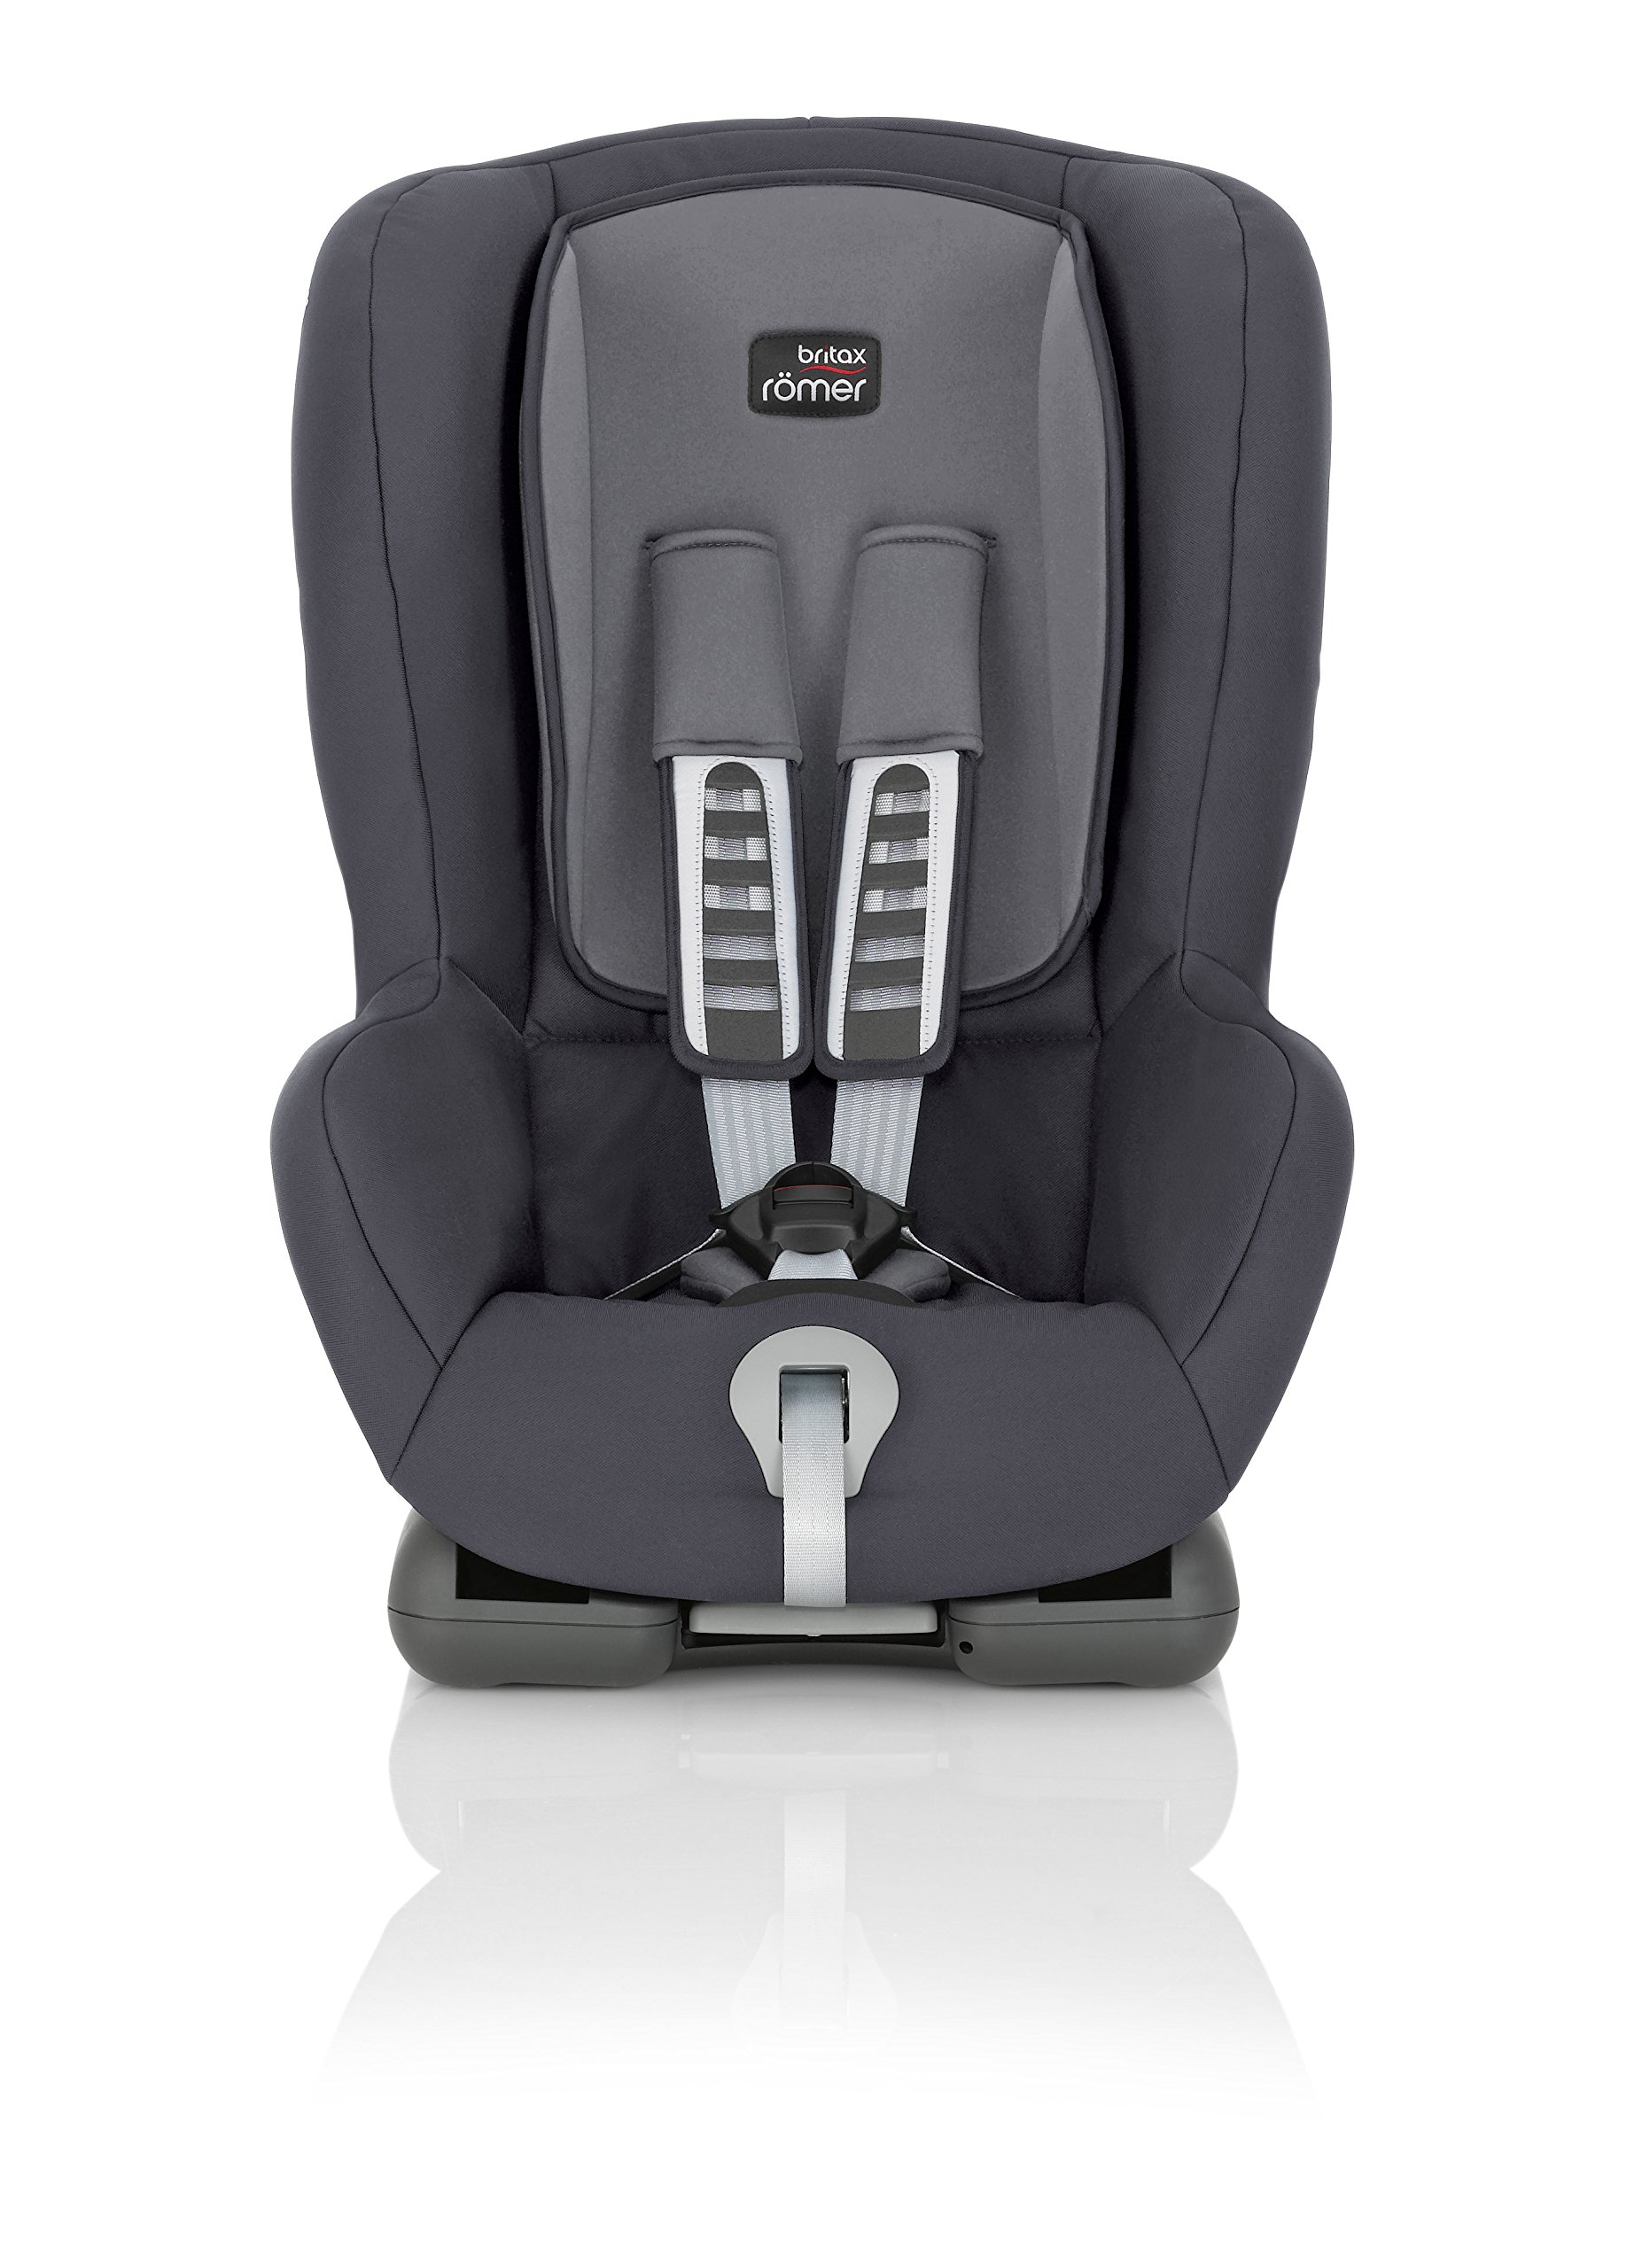 Britax Römer car seat, DUO PLUS Isofix group 1 (9-18 kg),Storm Grey Britax Römer Compatible with ISOFIX or 3-point seat belt installation this seat caters to any car Comfort without compromise - deep, padded side wings and multi-position recline Pivot link system to reduce forward movement in the event of an accident 3